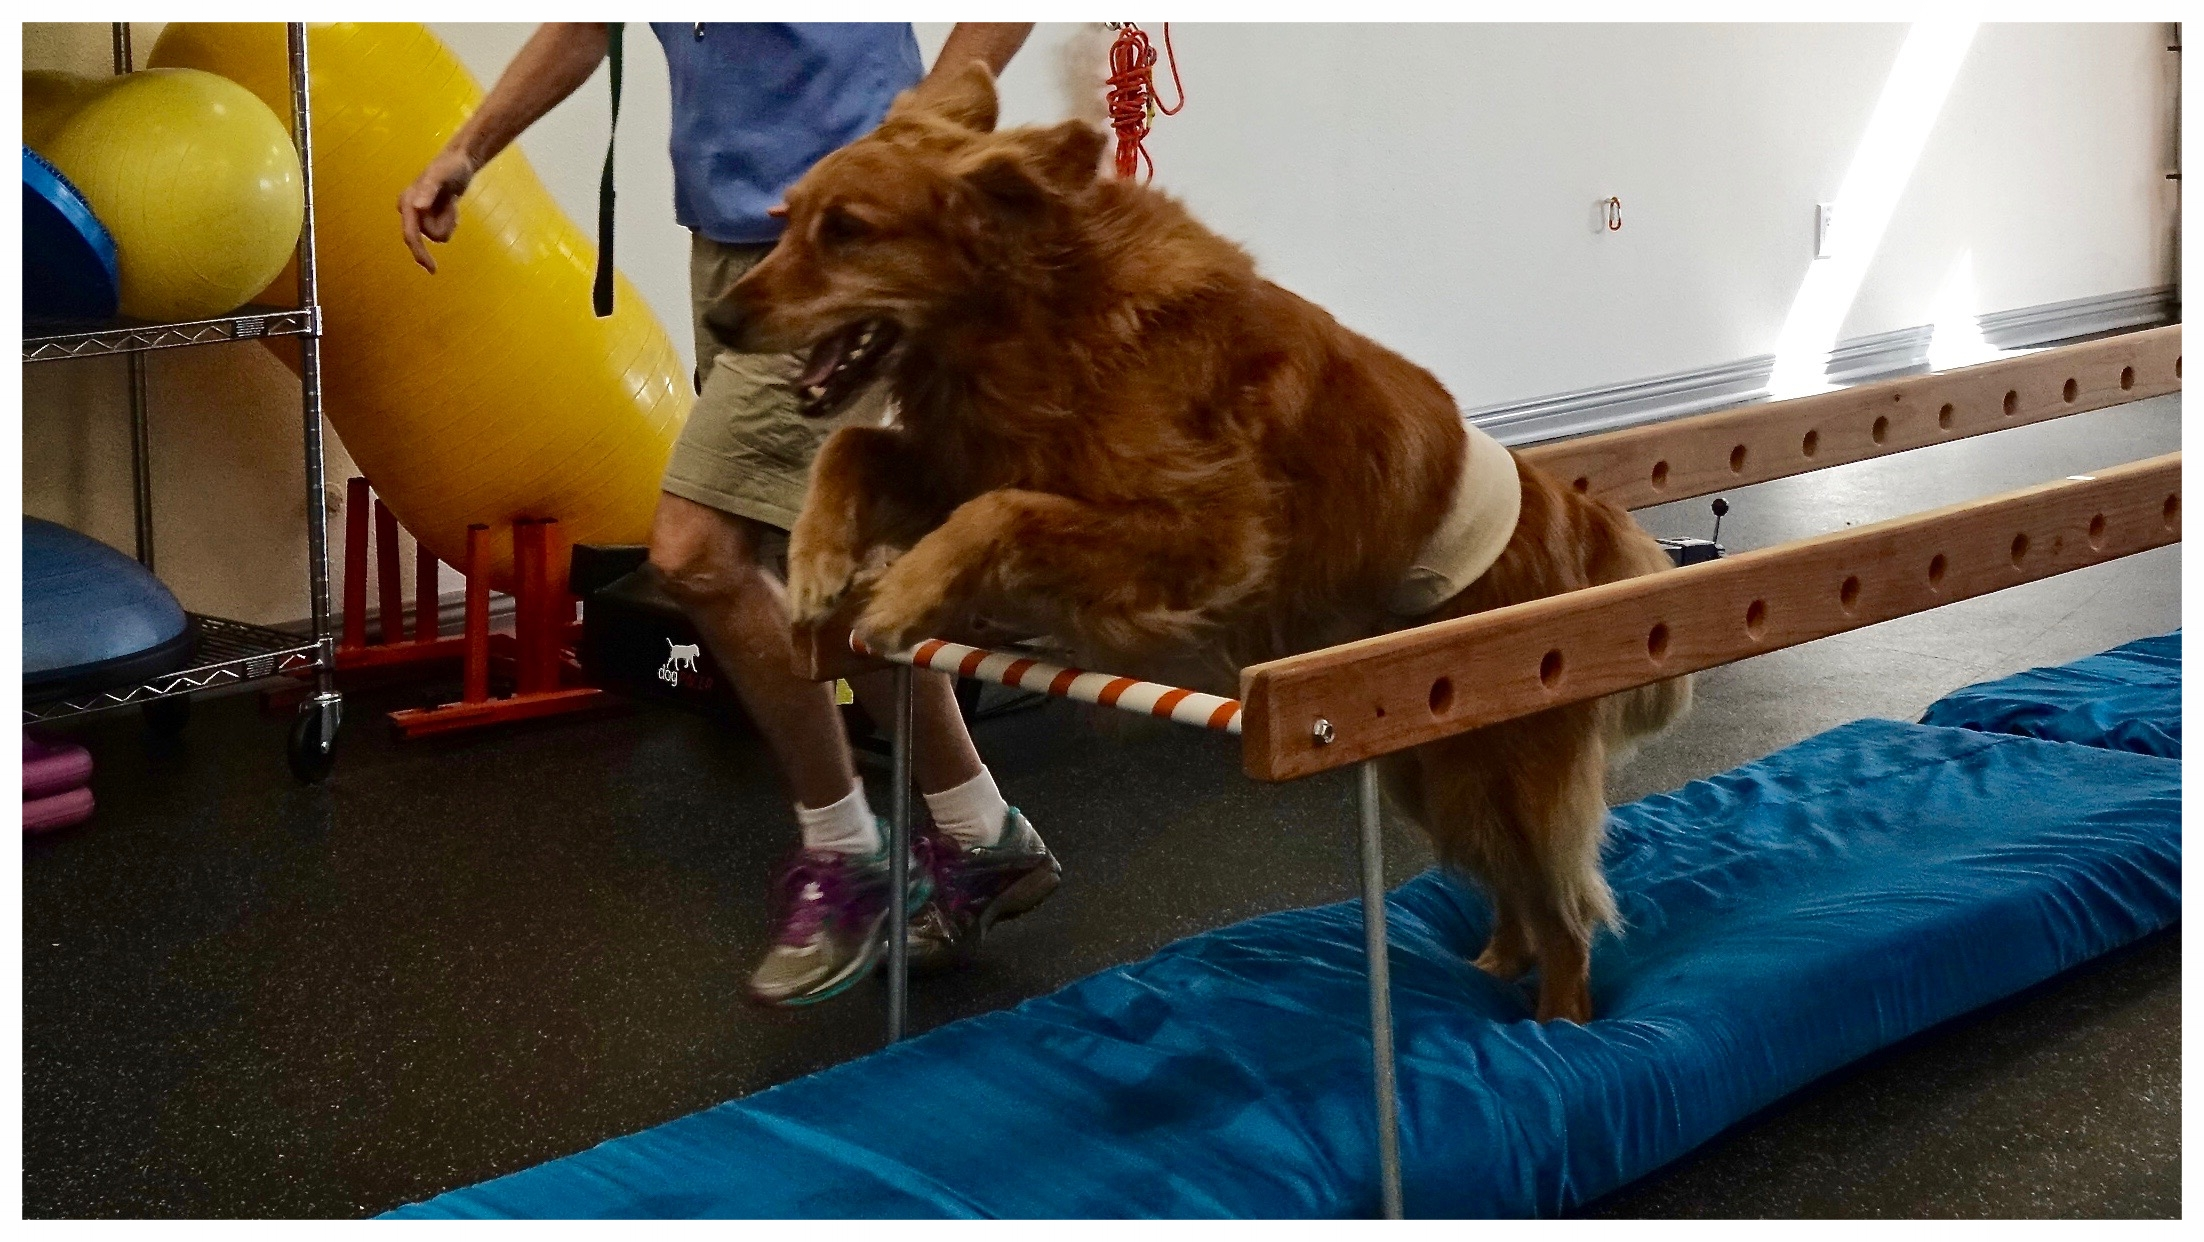 Jumping is a very effective exercise for pets working on returning to a high level of activity. This exercise is perfect for hind end strengthening and for building endurance.